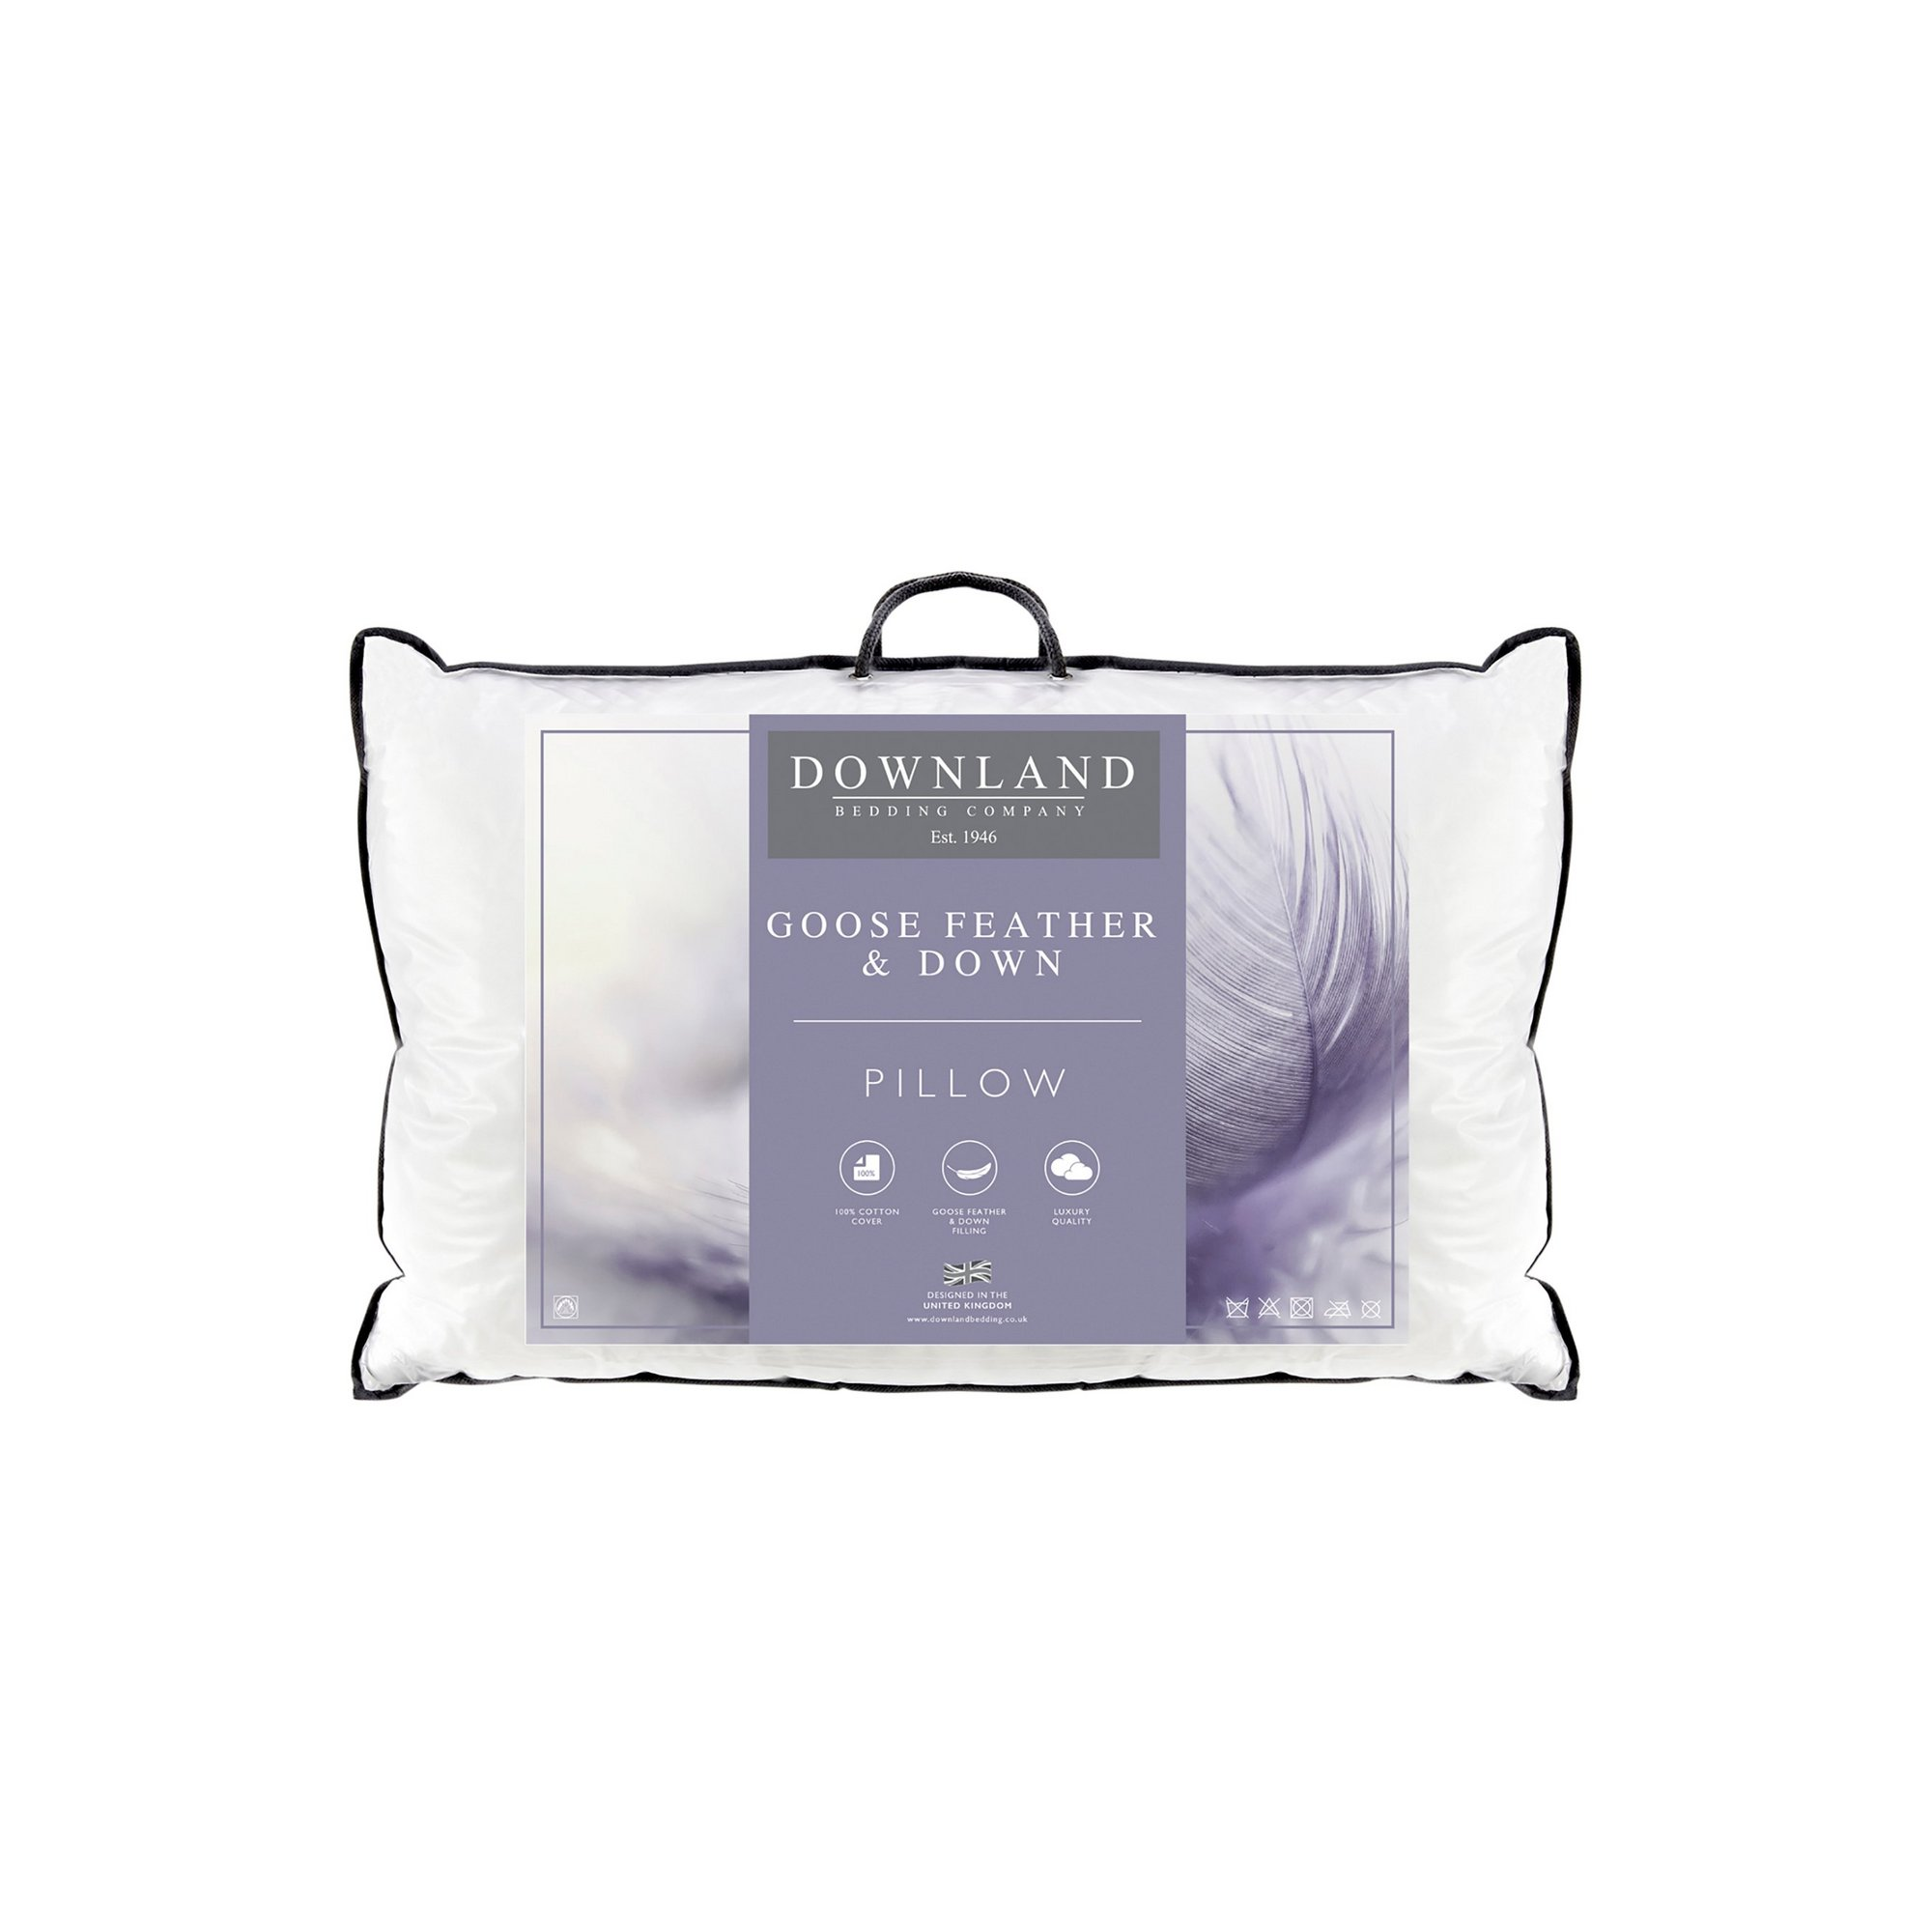 Image of Downland Goose Feather Pillow Range